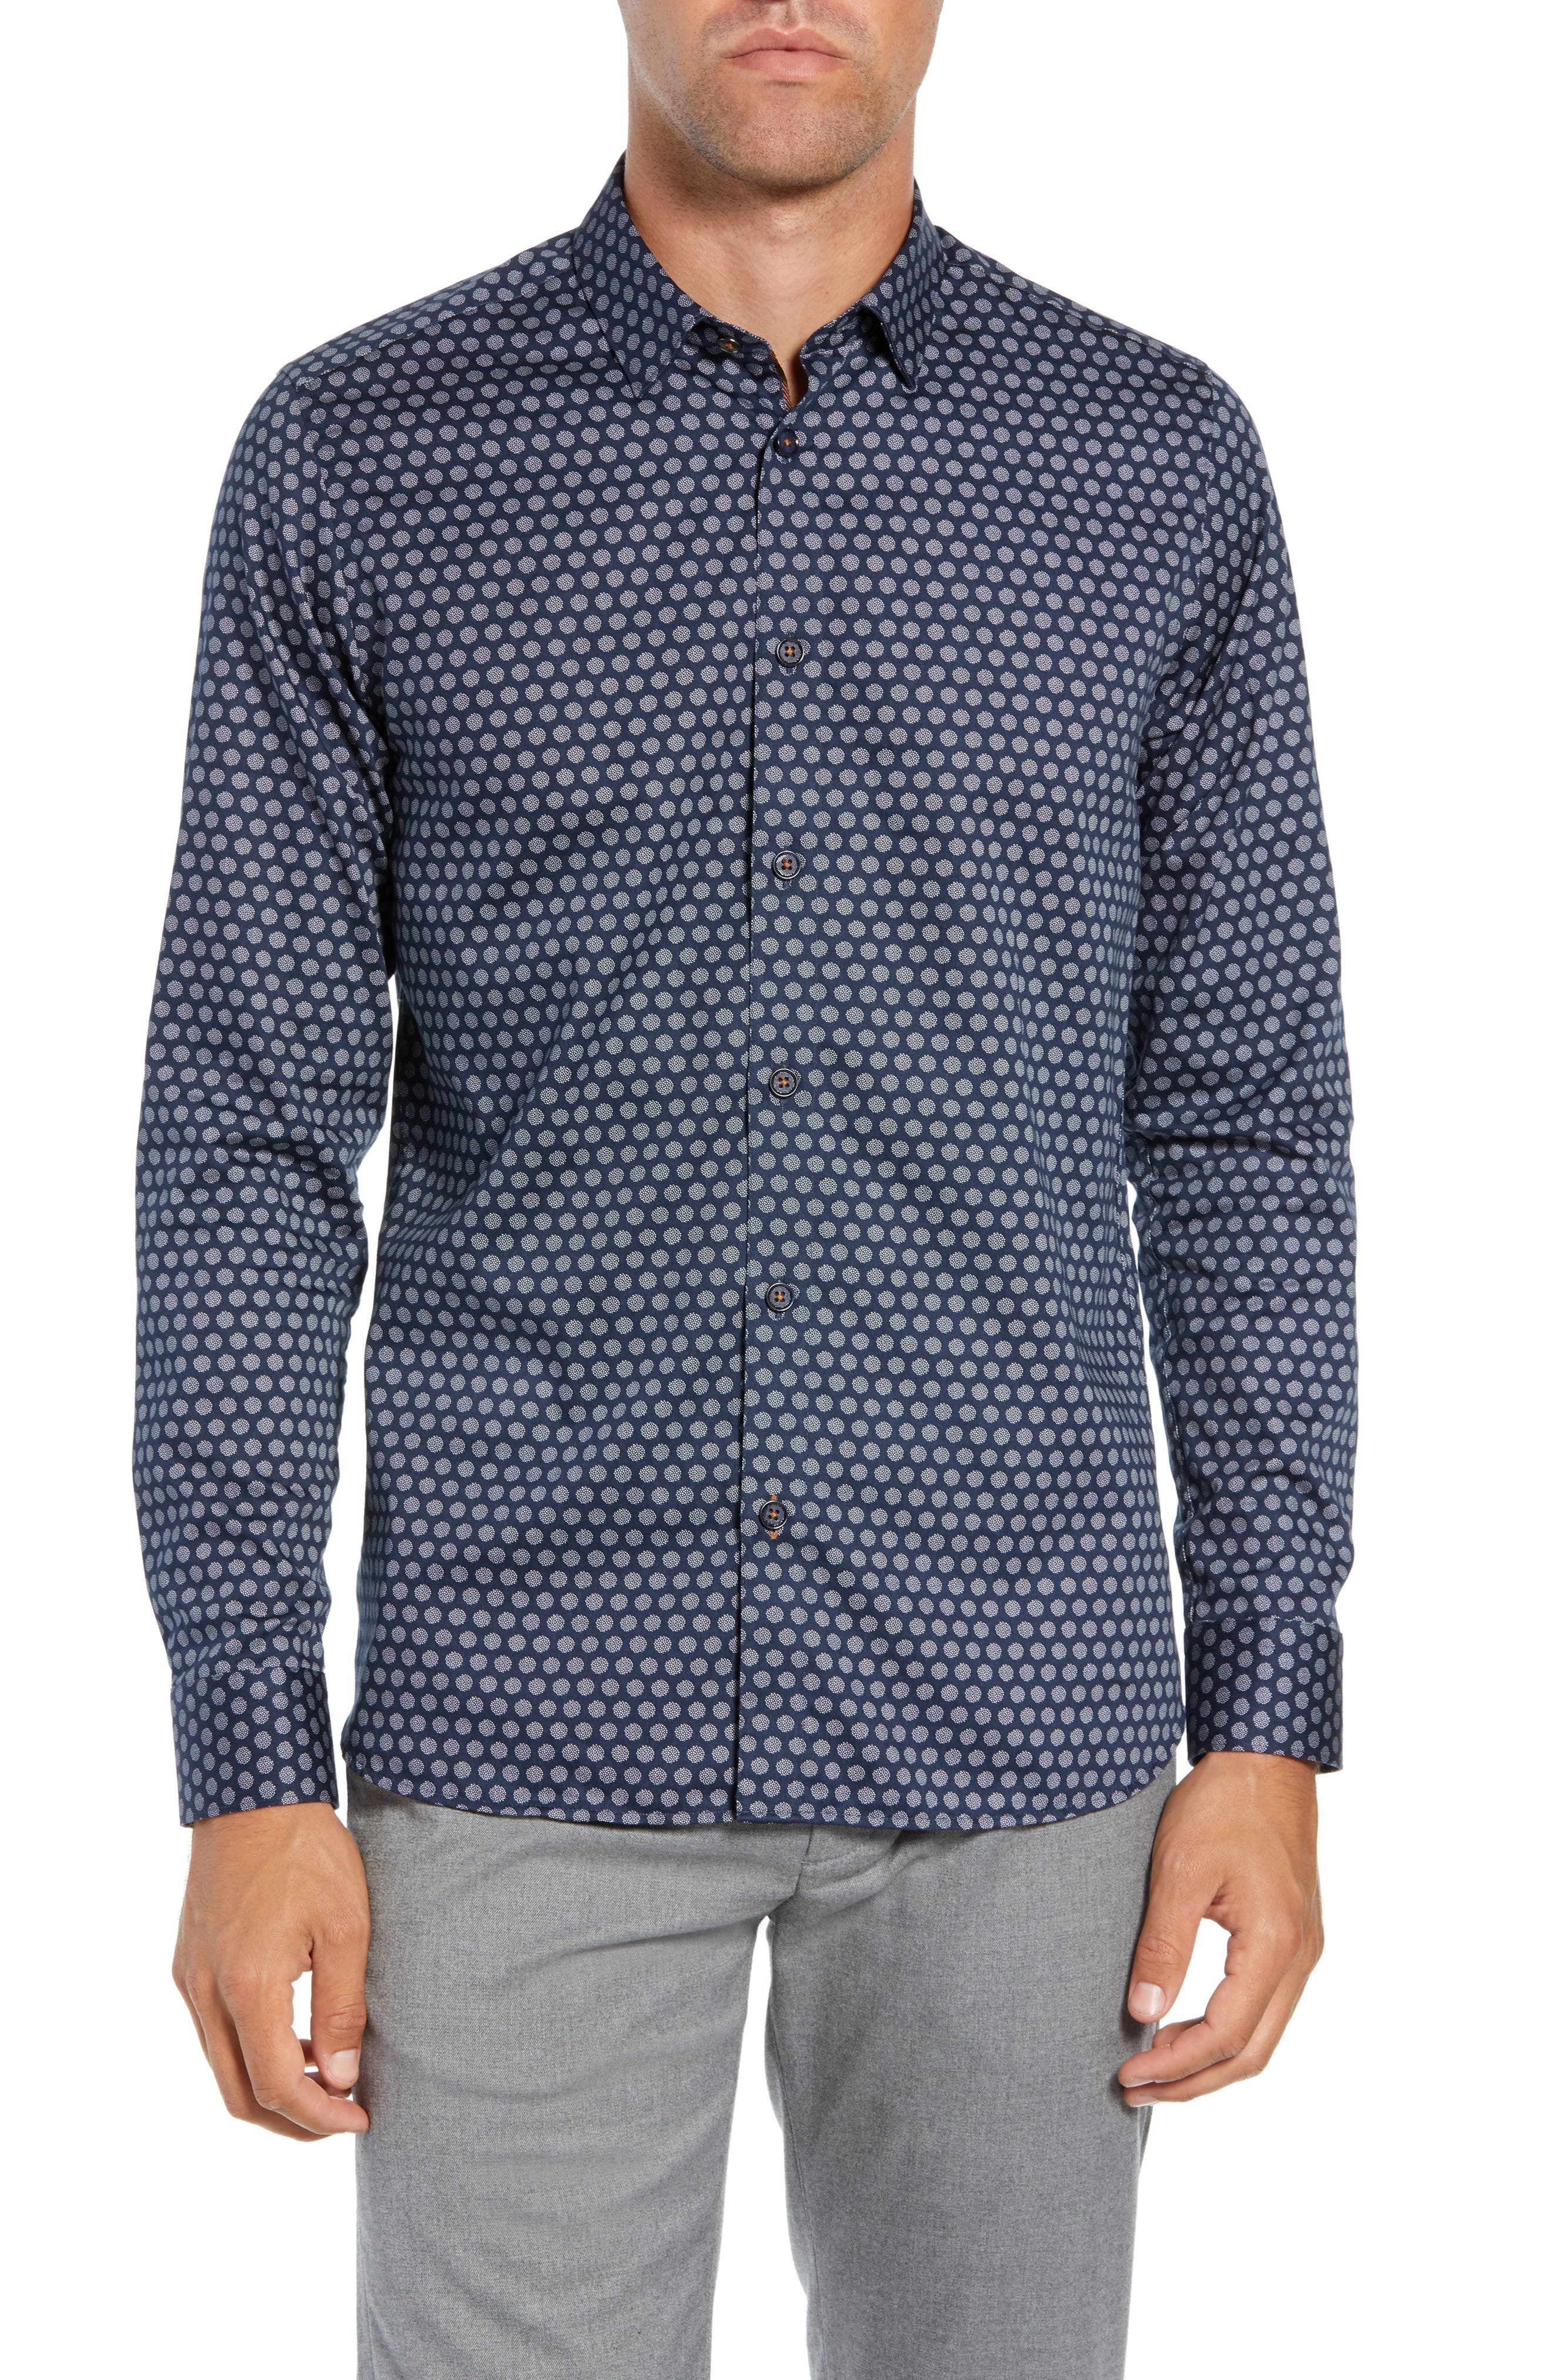 Camdent Slim Fit Print Sport Shirt,                         Main,                         color, NAVY